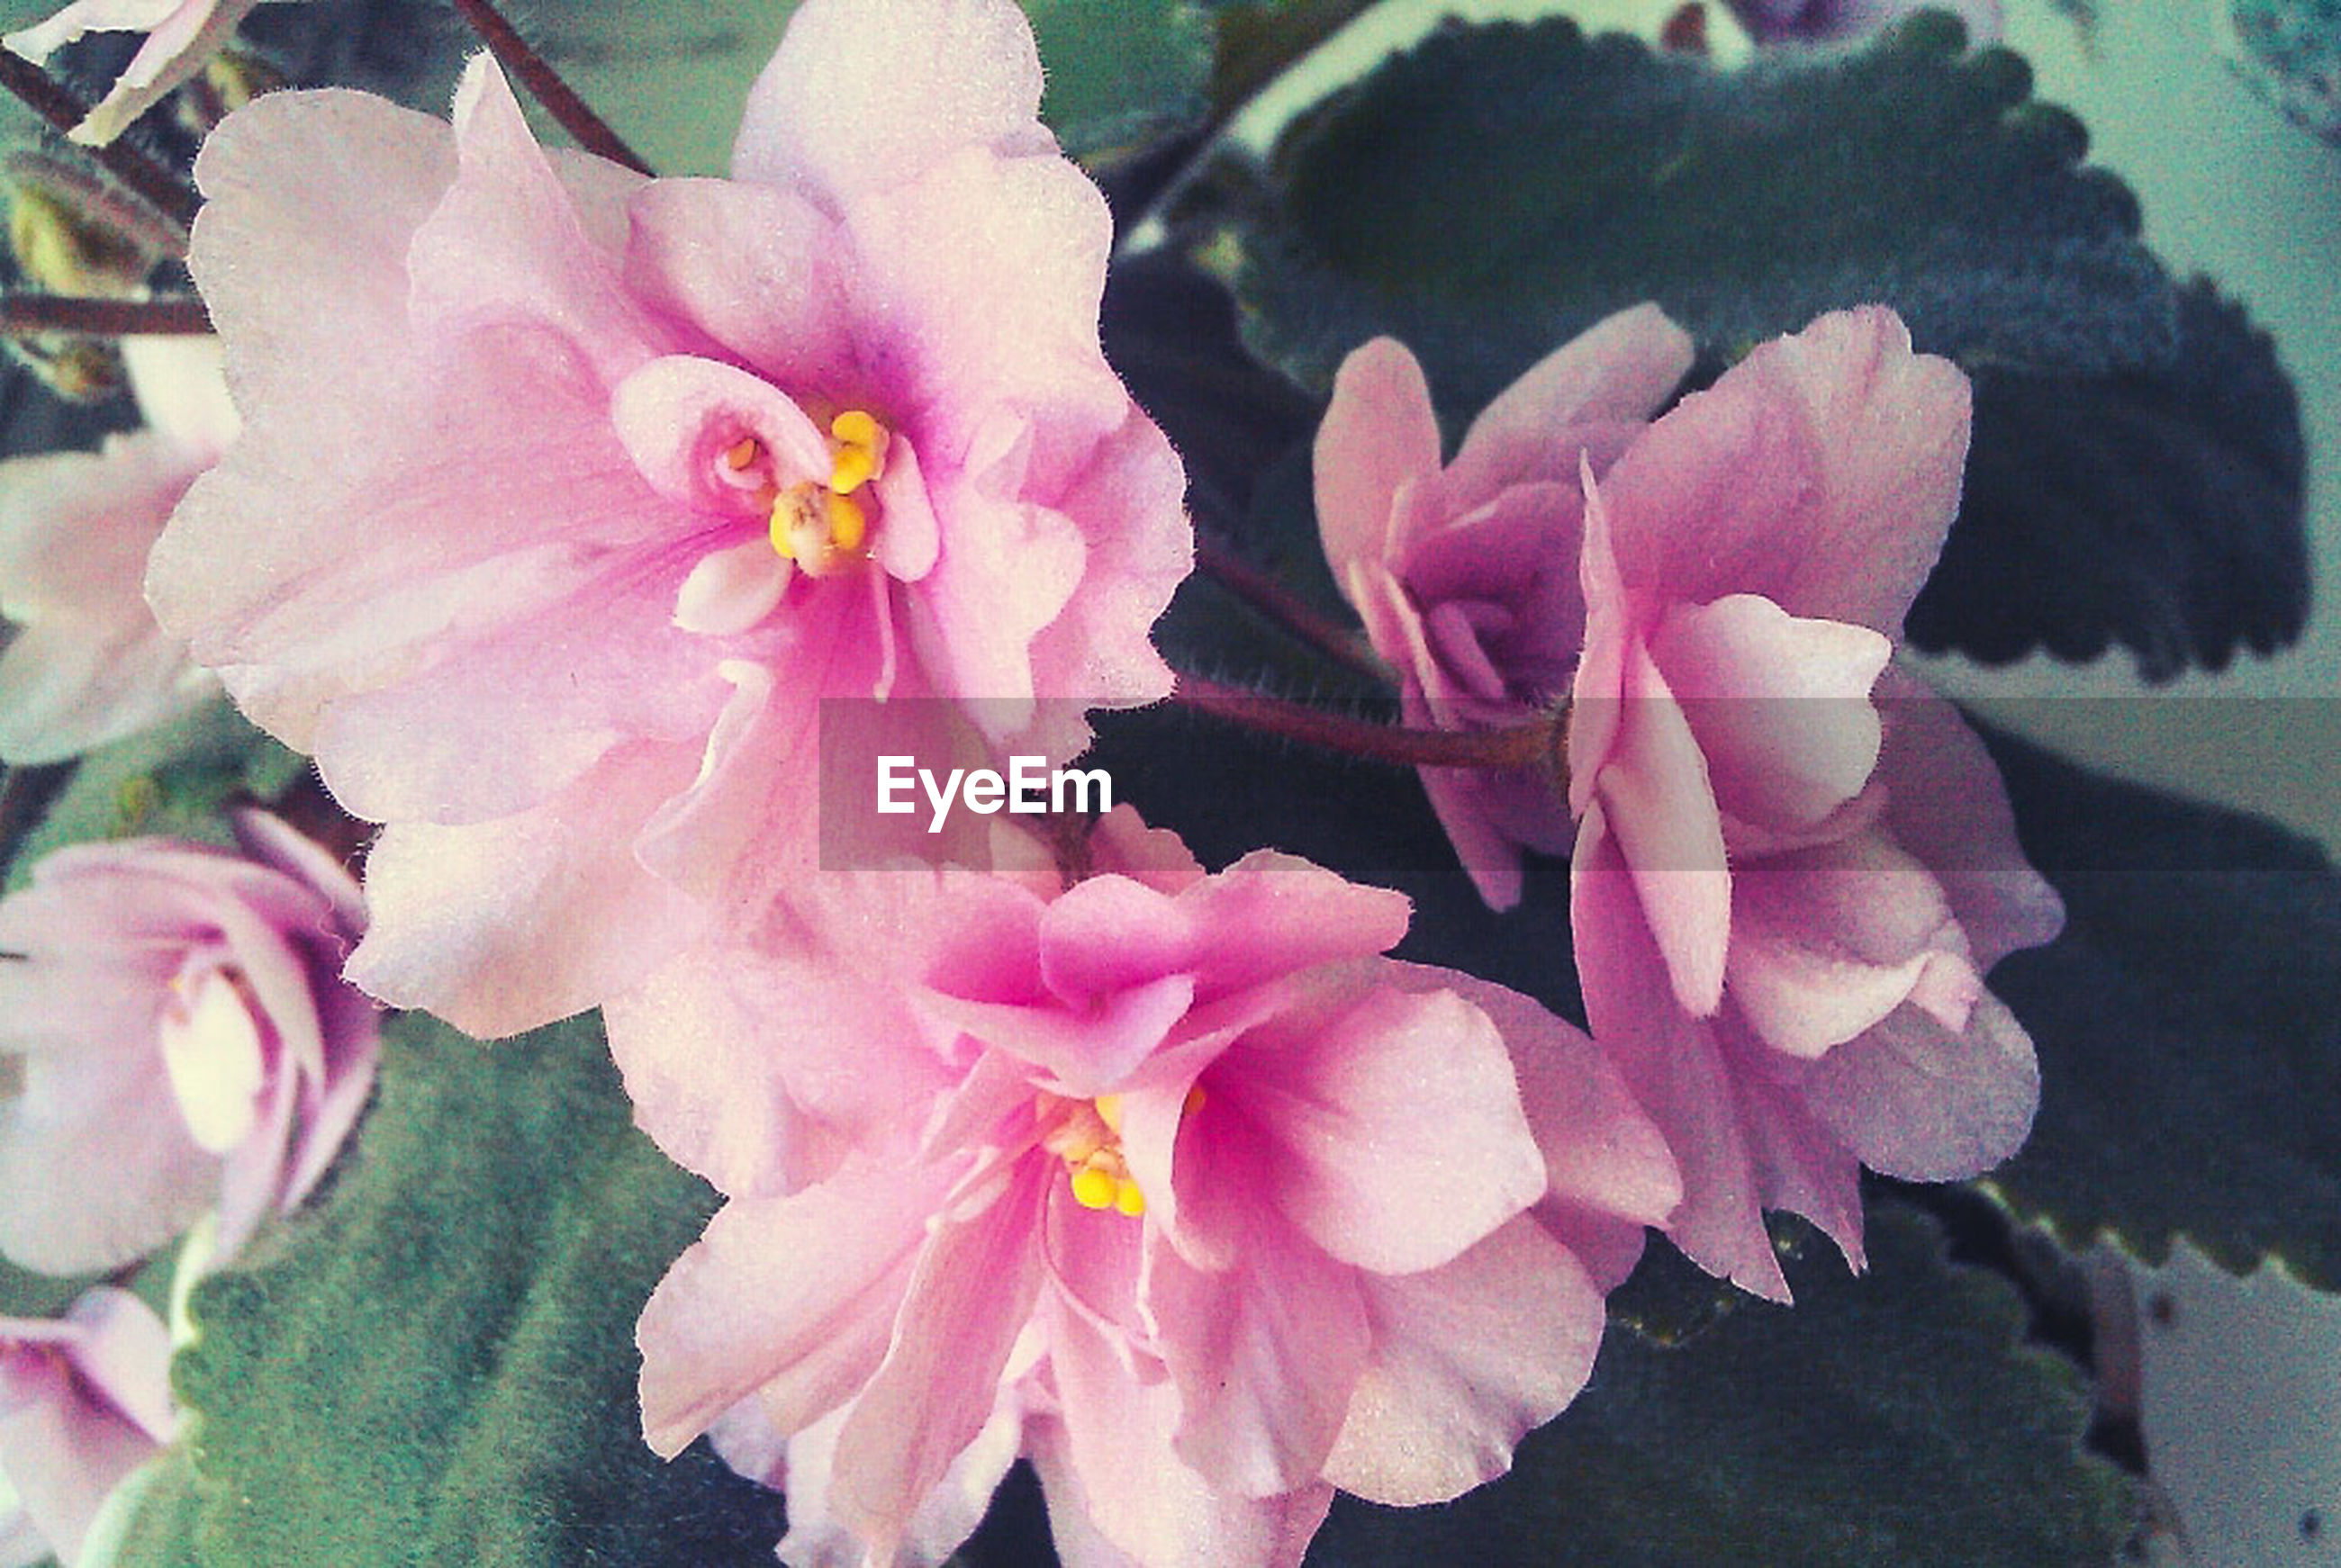 flower, petal, freshness, pink color, fragility, flower head, beauty in nature, growth, close-up, nature, blooming, plant, focus on foreground, in bloom, pink, leaf, high angle view, park - man made space, outdoors, day